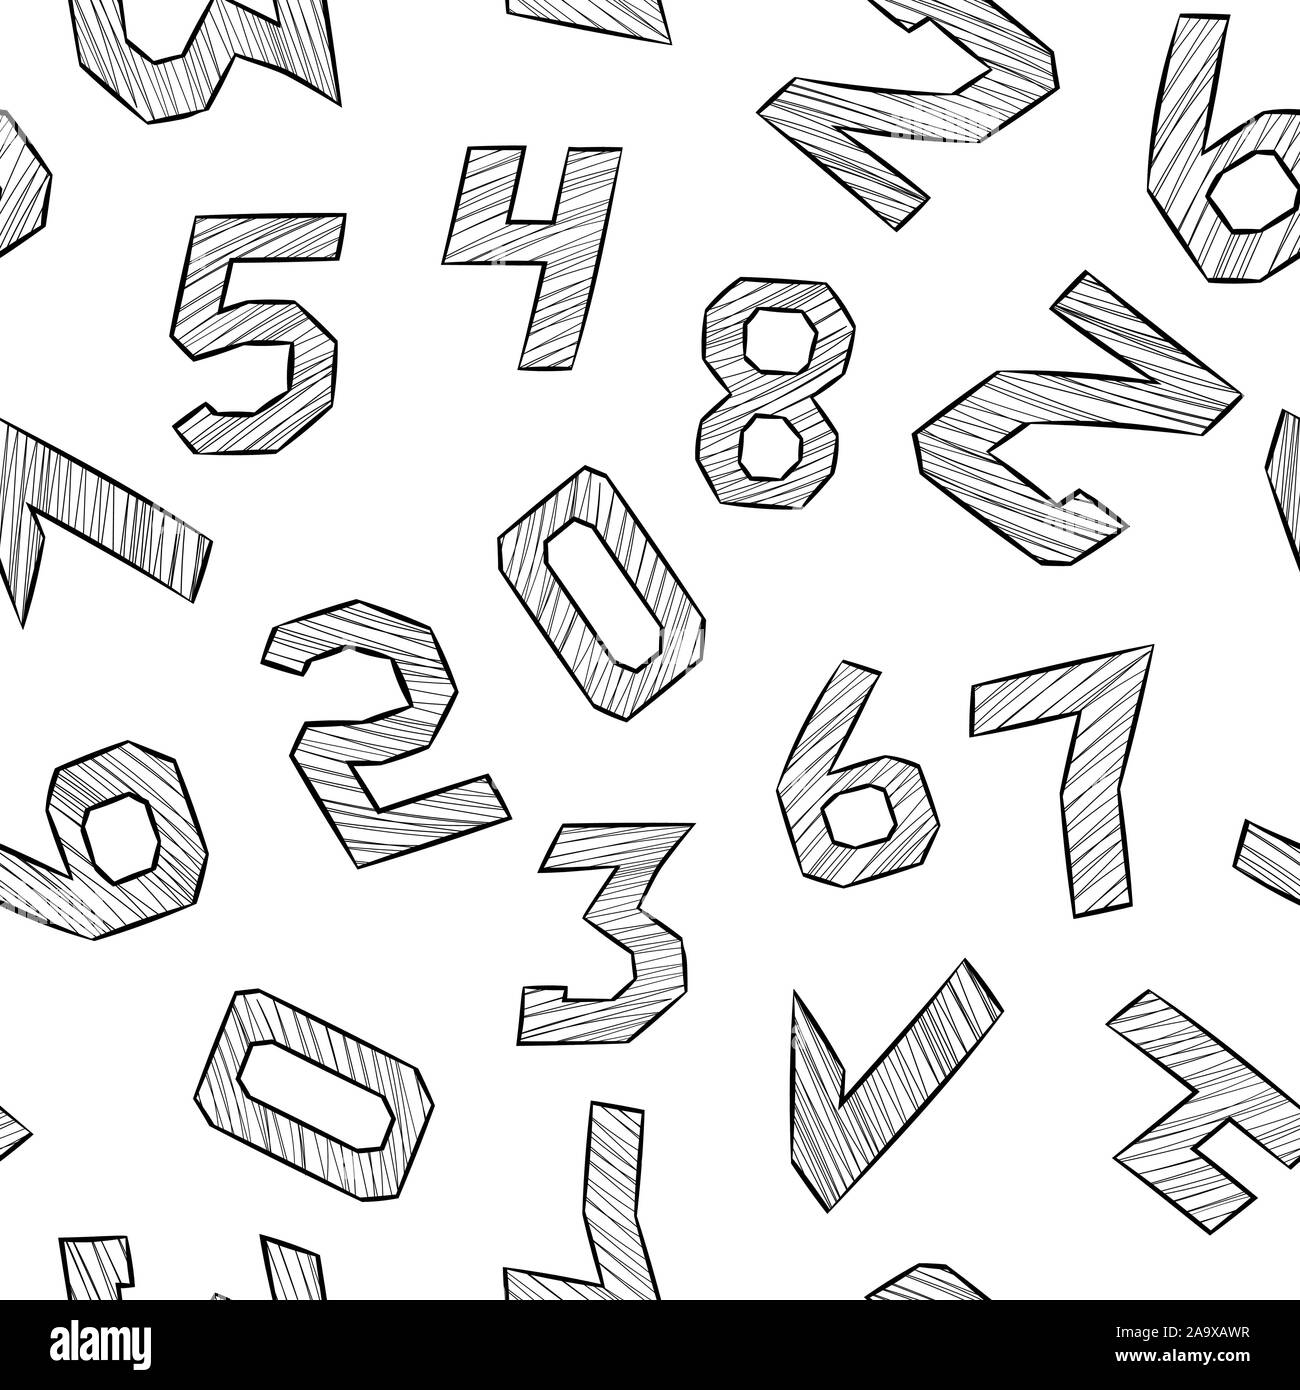 Numbers. Black and white hand drawn signs in hatching style. Seamless pattern Stock Vector